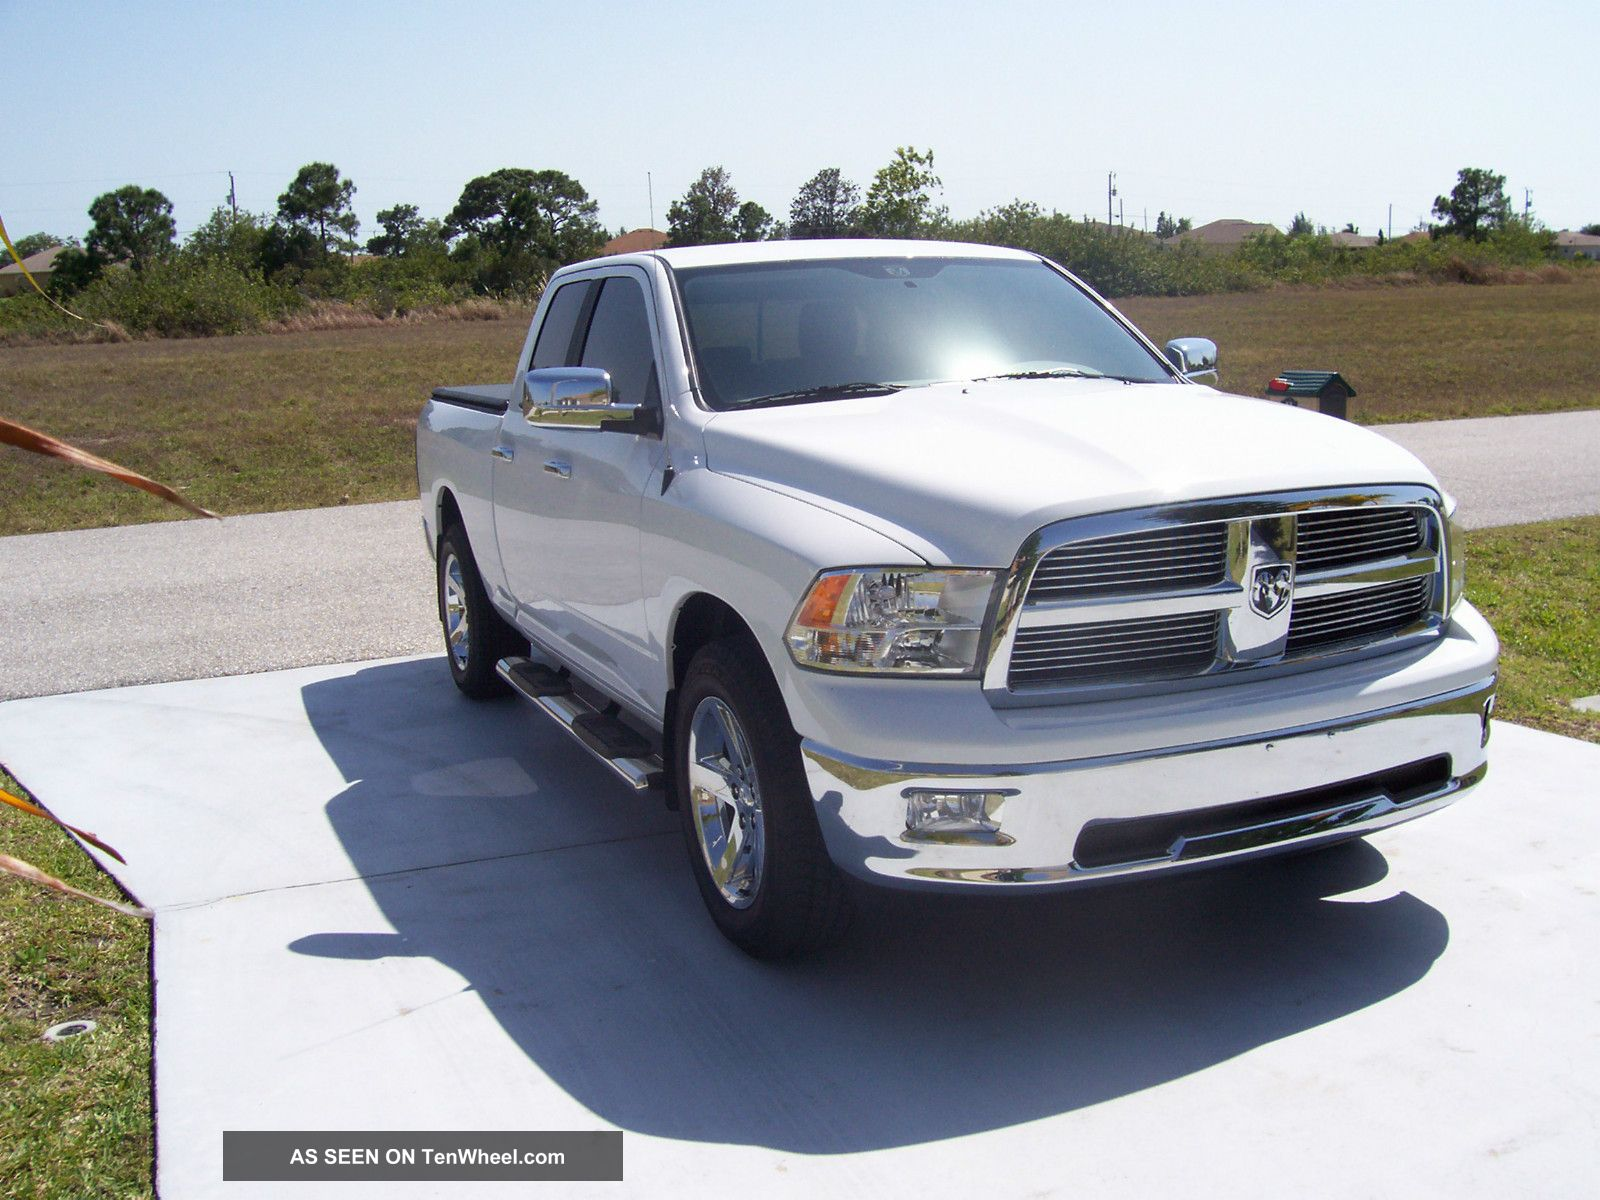 2012 dodge ram 1500 quad cab 4x4 slt big horn. Black Bedroom Furniture Sets. Home Design Ideas